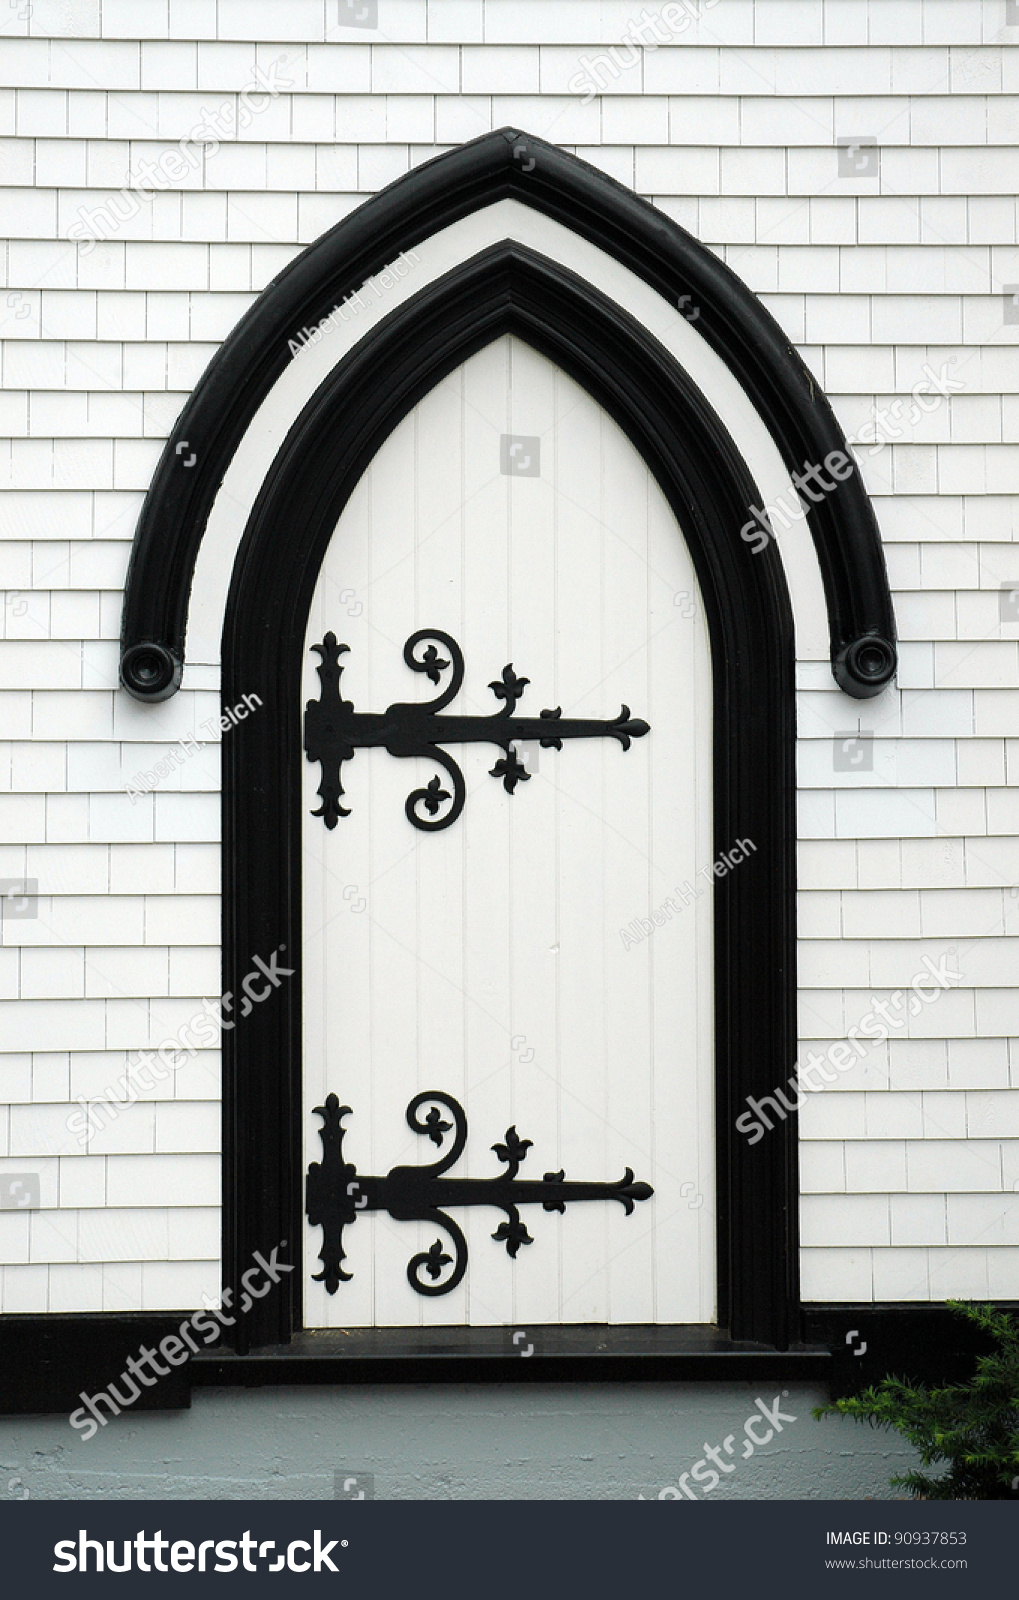 White Arched Wooden Church Door Black Stock Photo (Edit Now ...